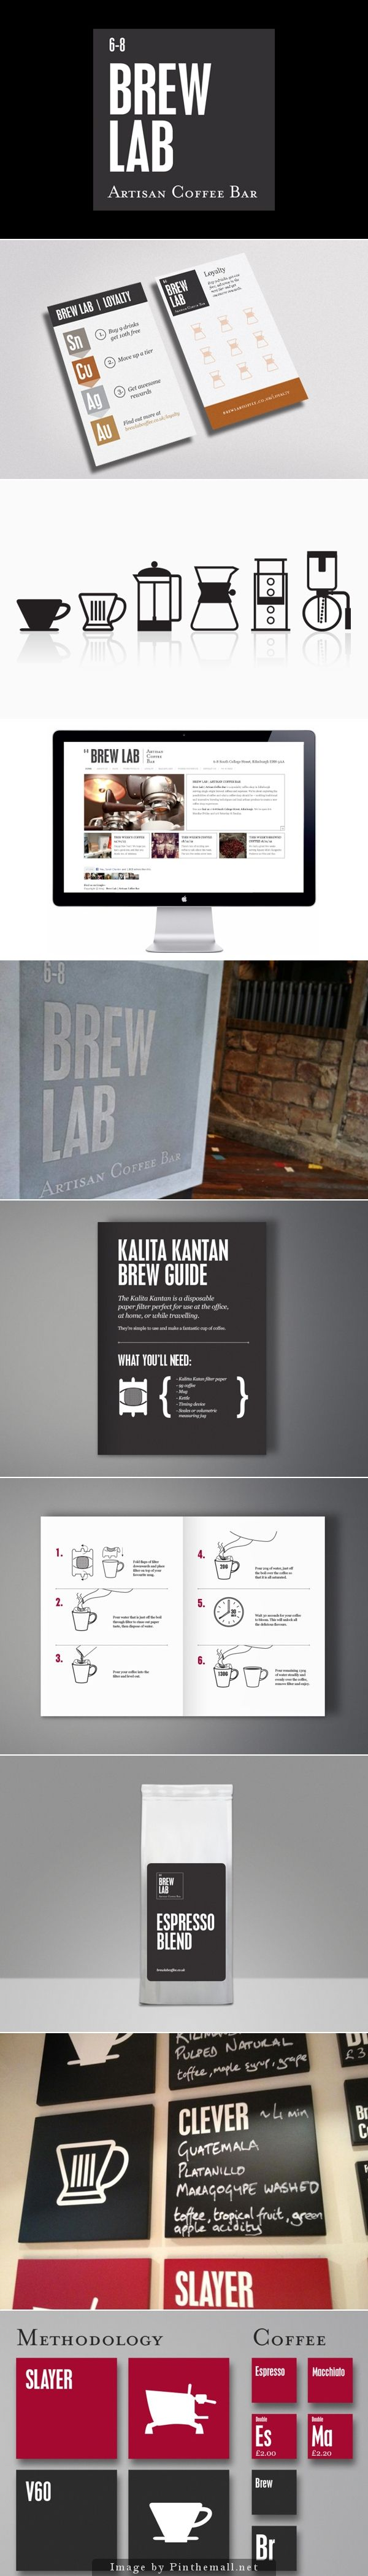 brew lab, artisan coffee bar